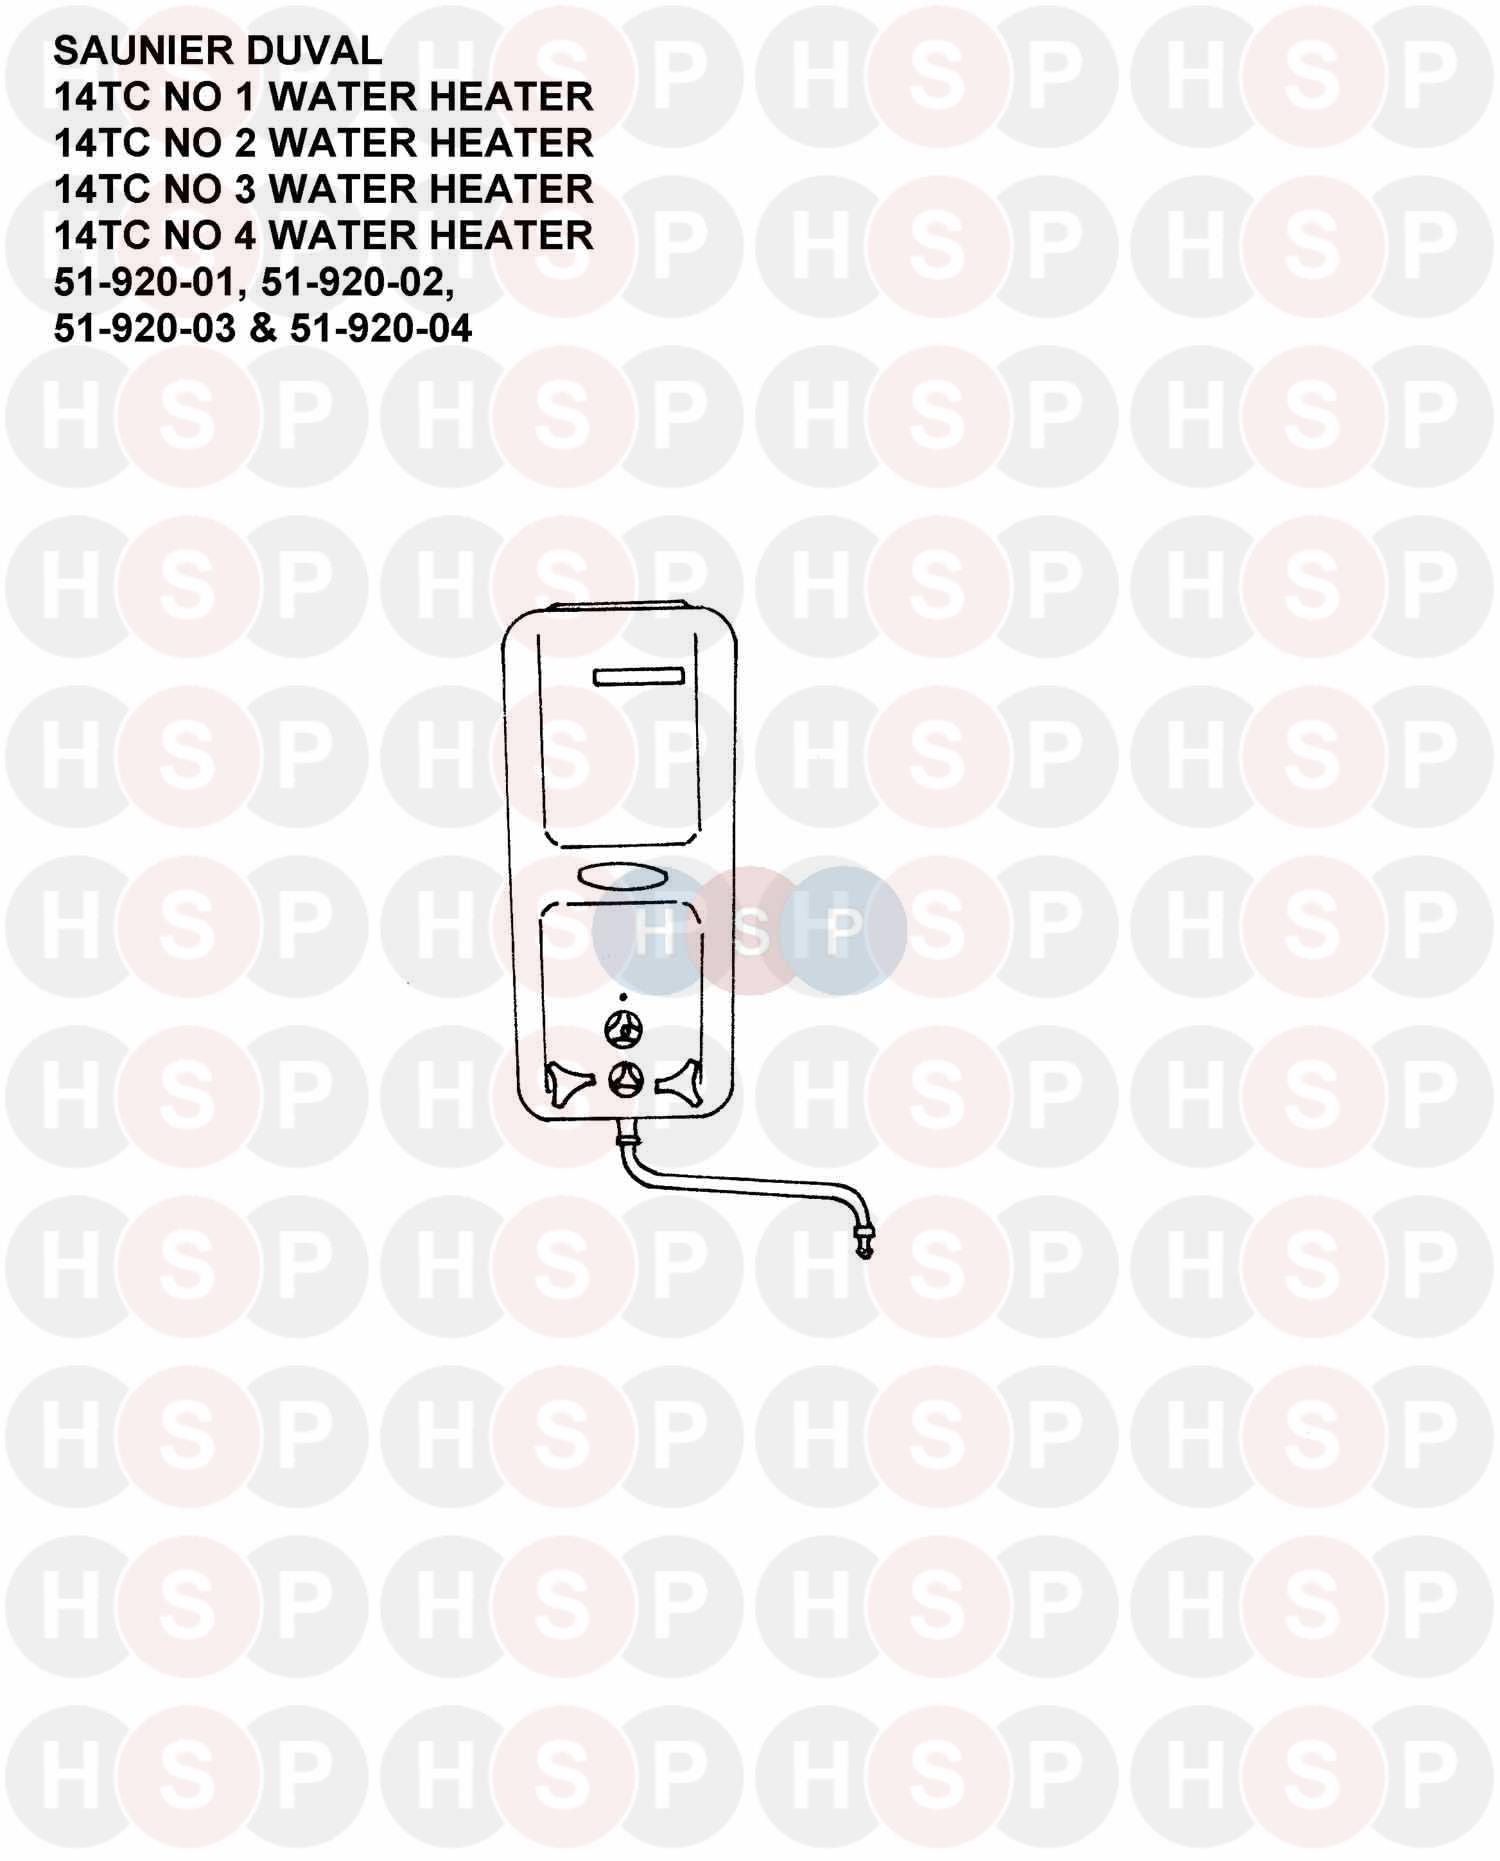 saunier duval 14tc no 1 water heater  appliance overview